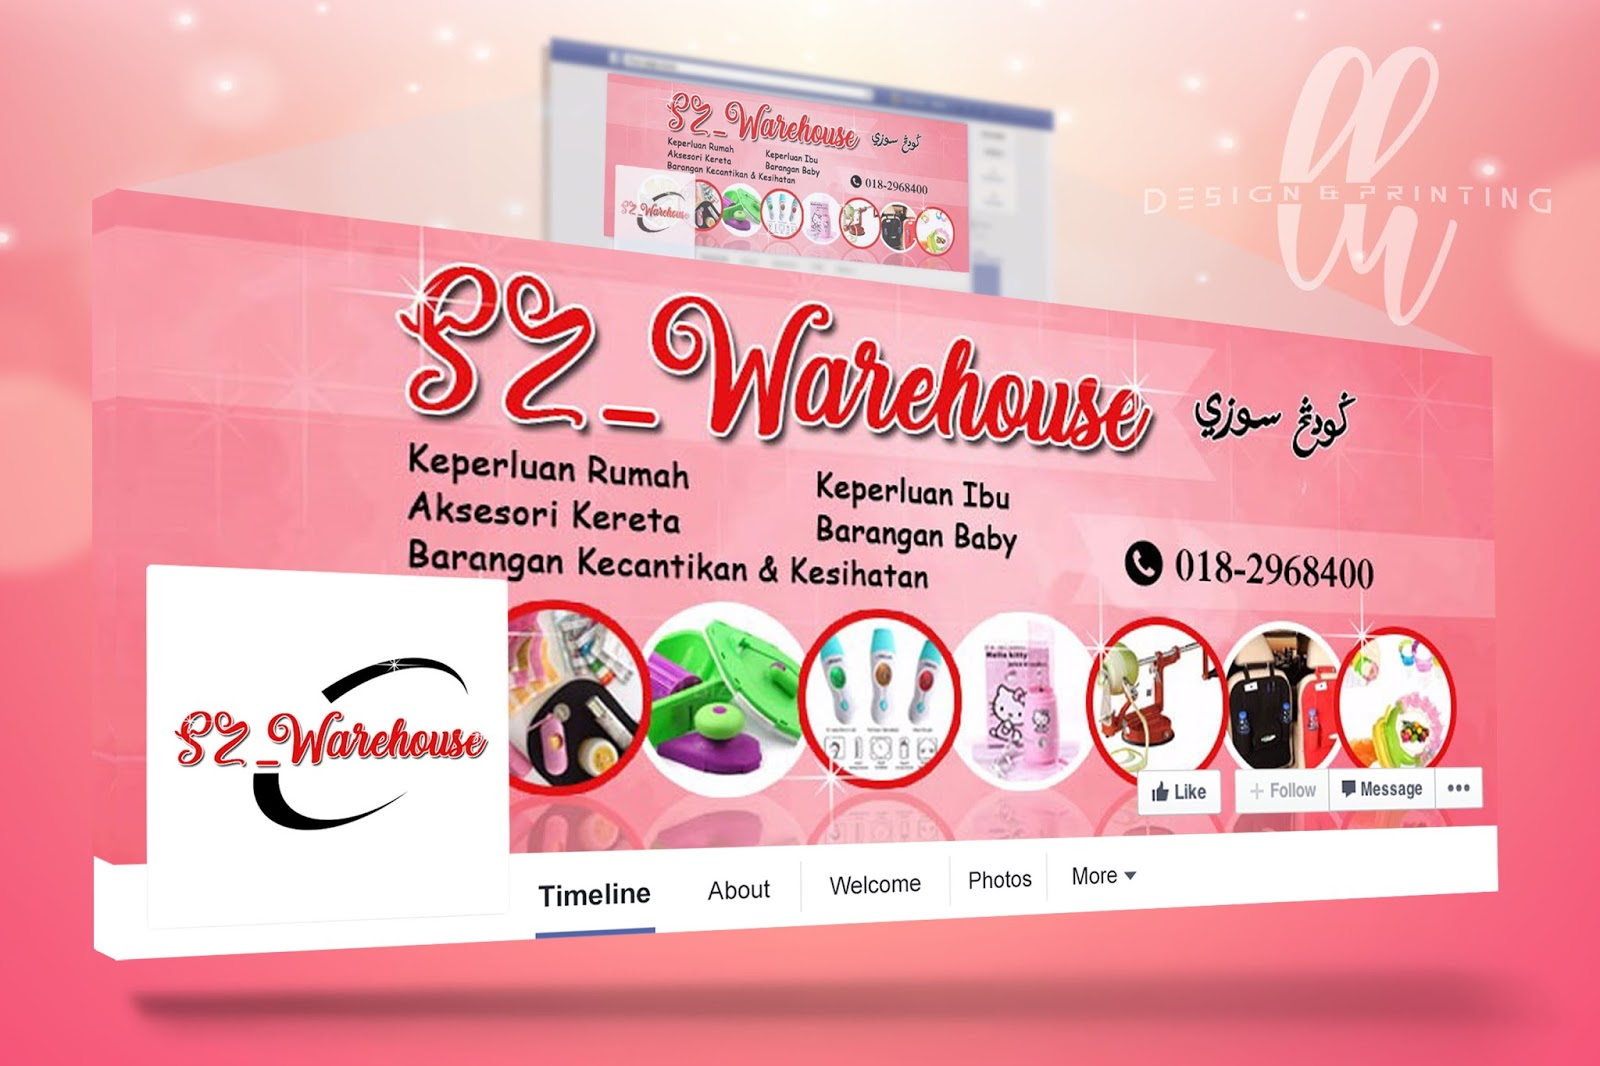 DESIGN FACEBOOK COVER PHOTO DAN LOGO PAGE SZ_WAREHOUSE